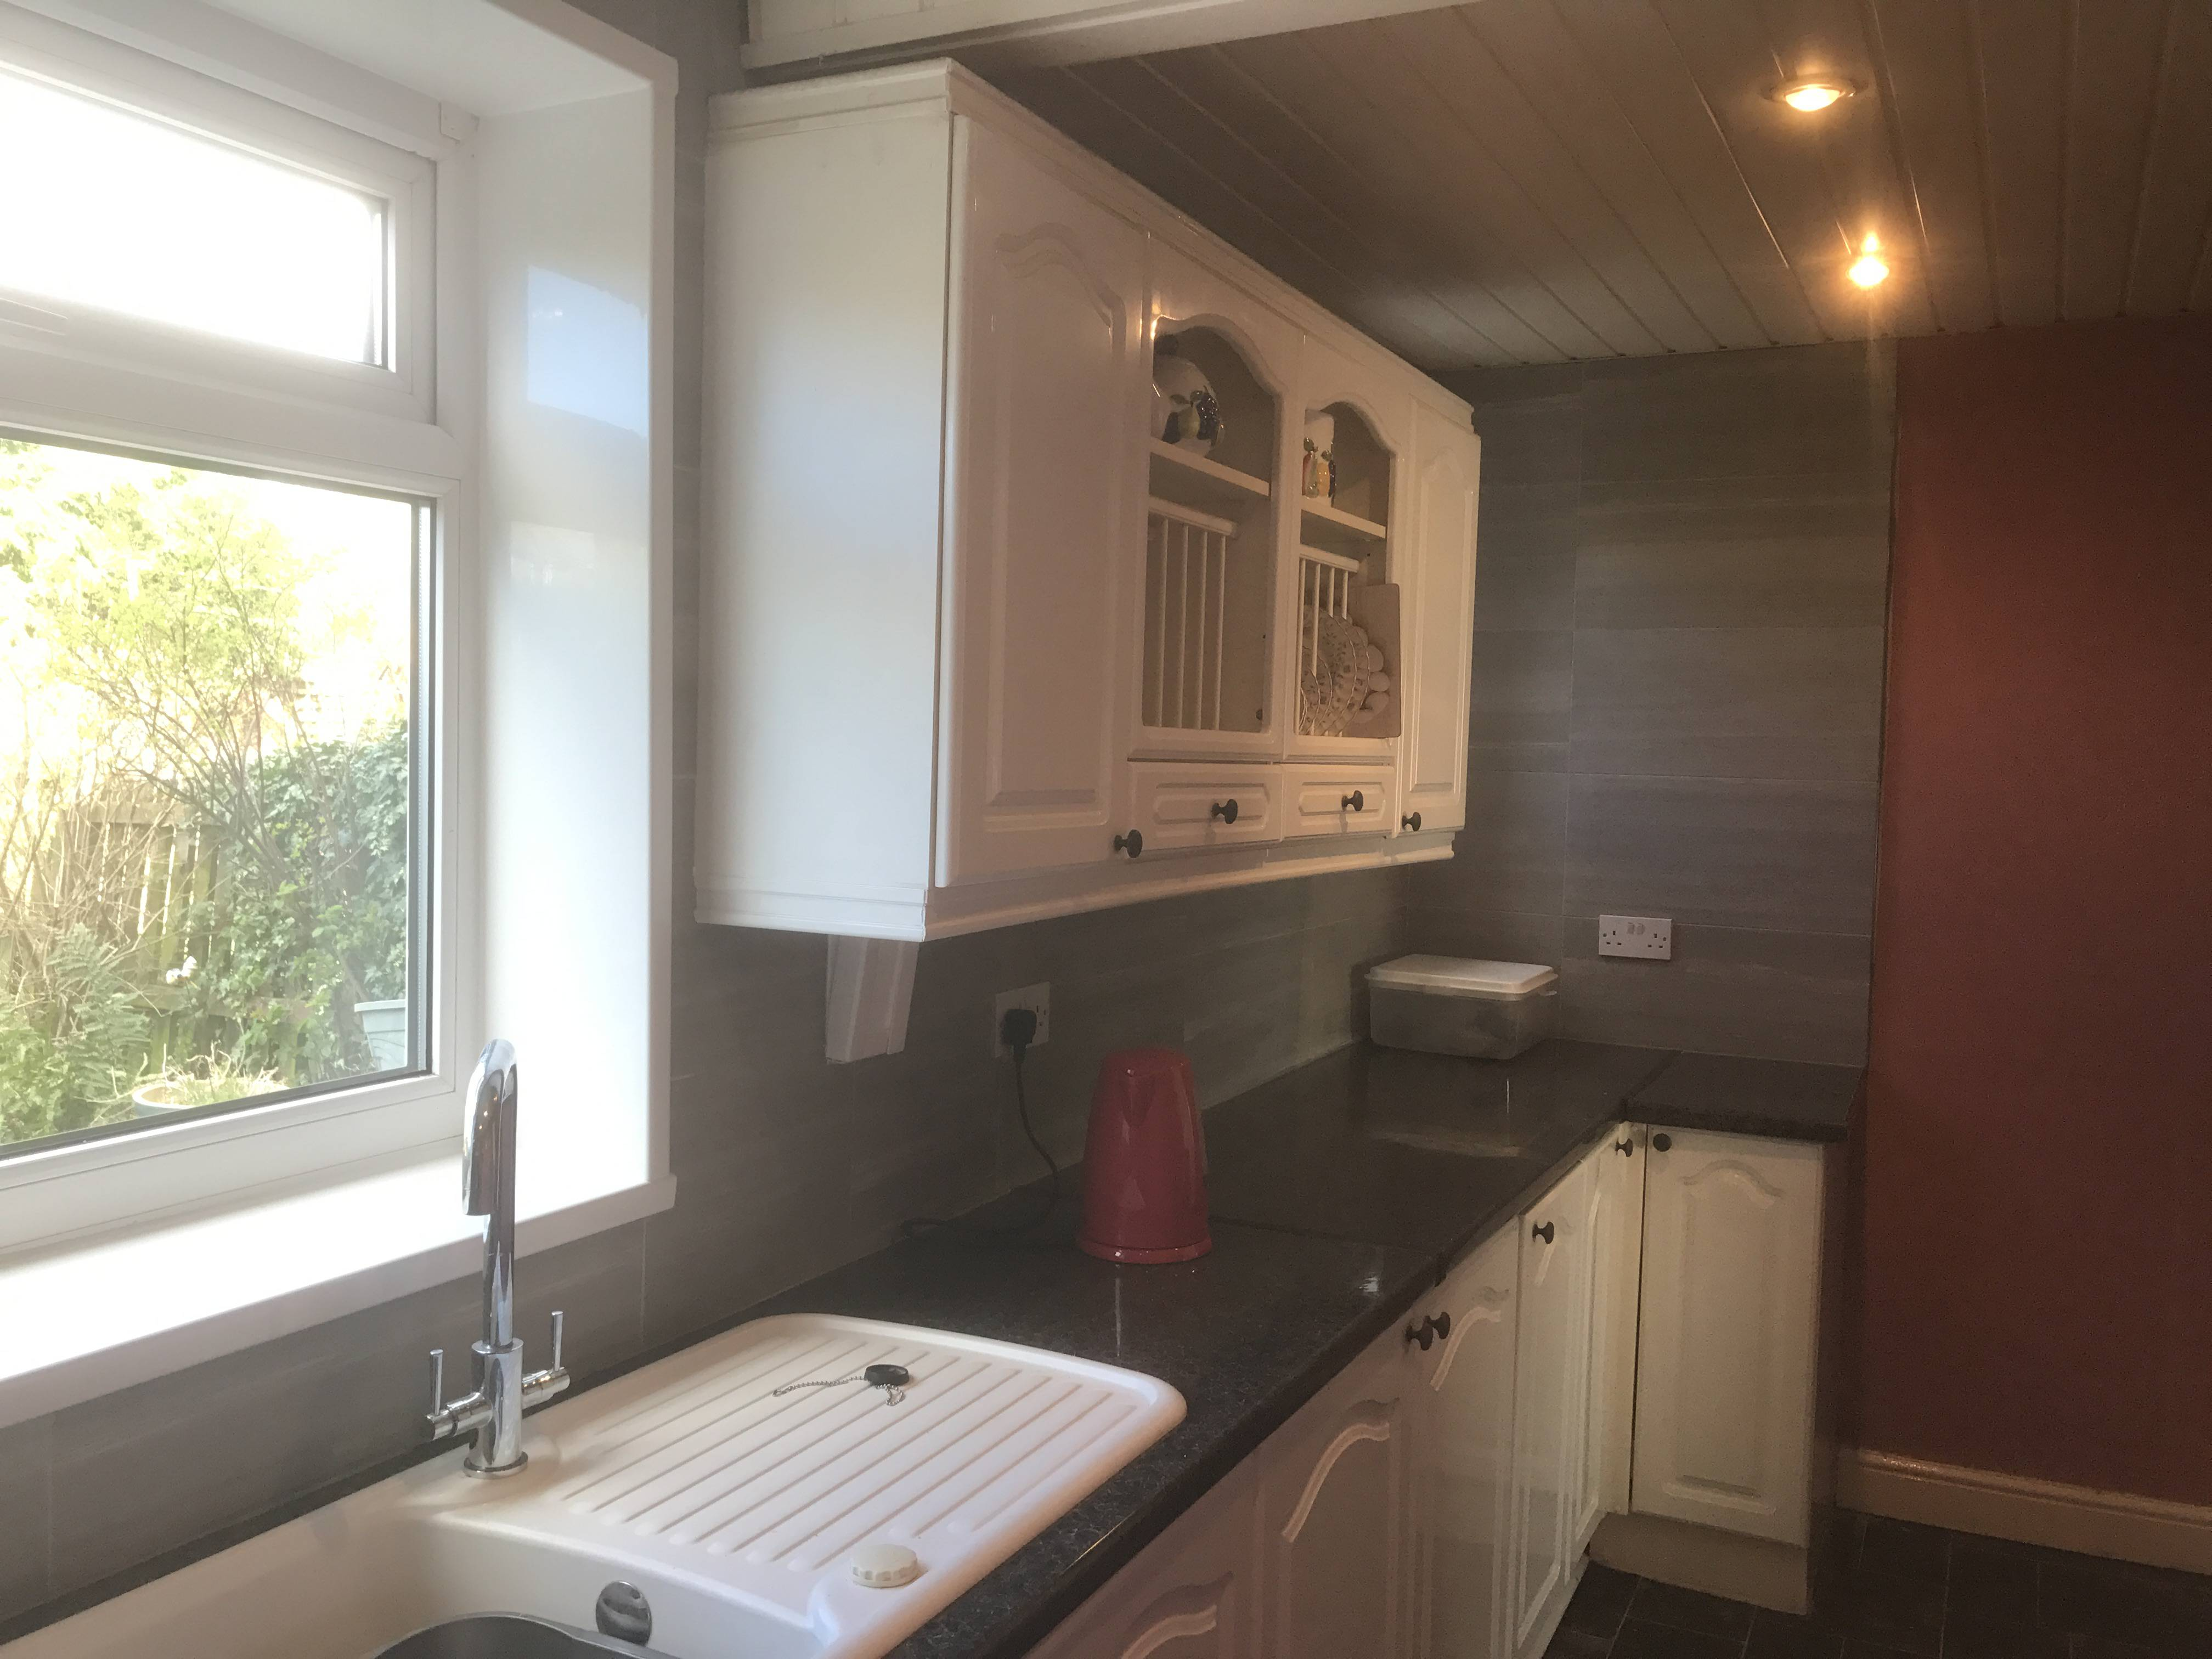 Kitchen and tiling